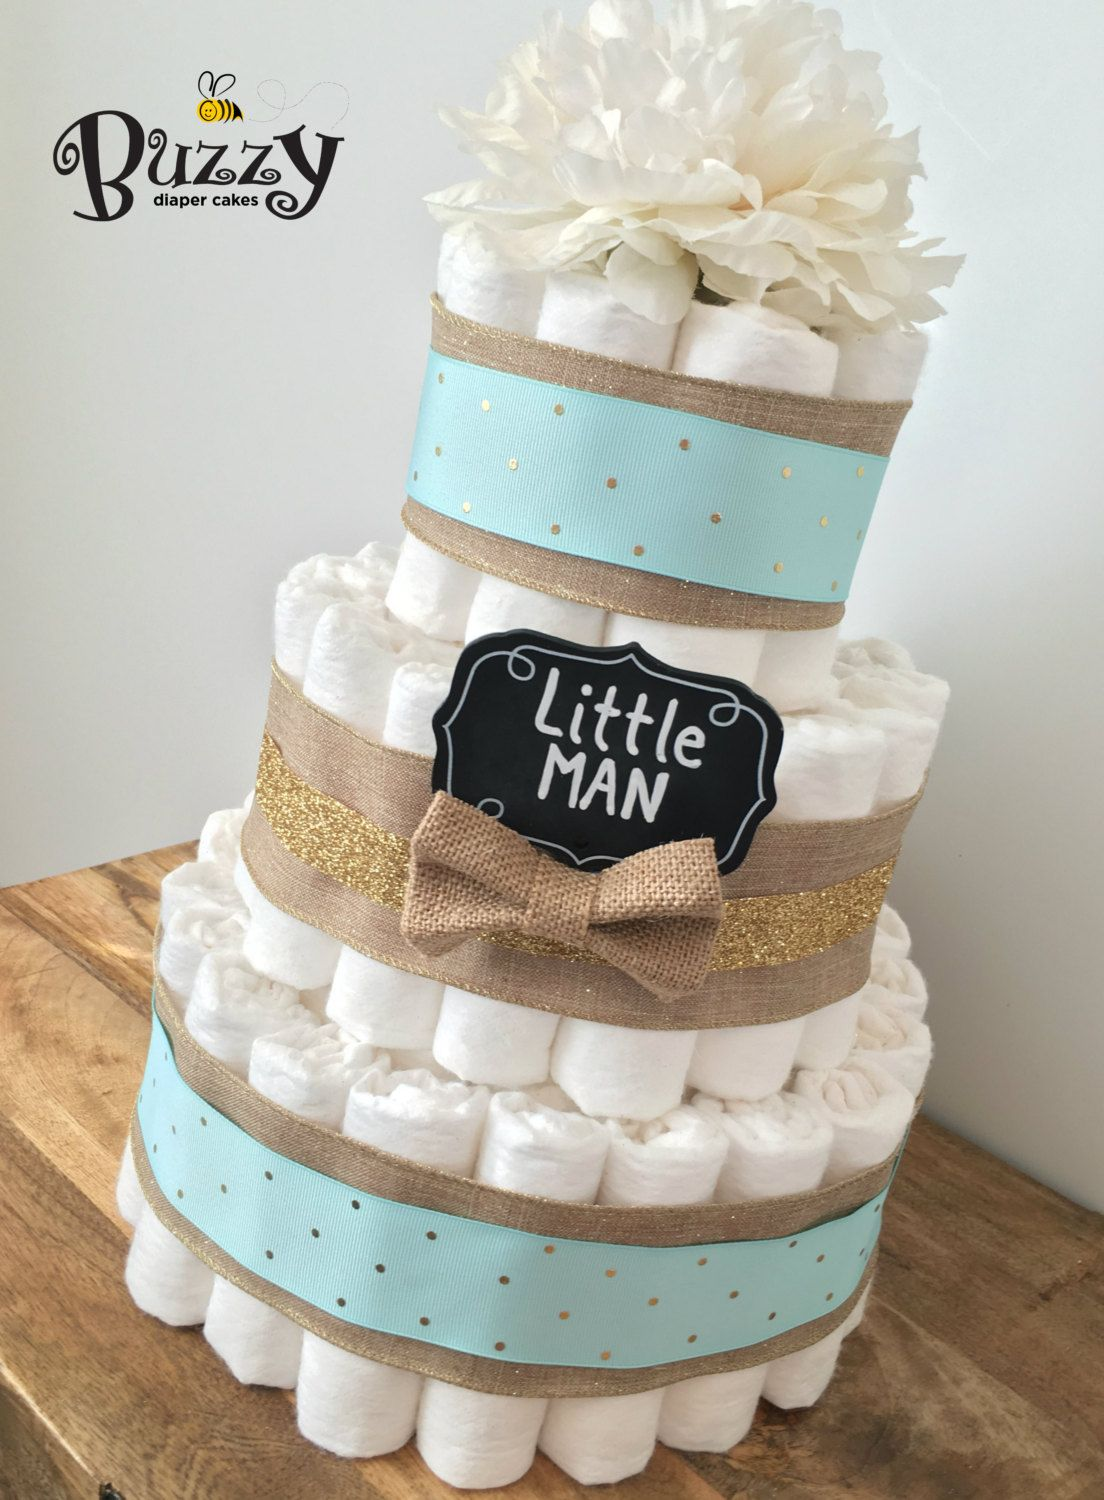 Little Man Boy Diaper Cake Spa Blue Burlap 3 Tier Baby Shower Centerpiece Cakes